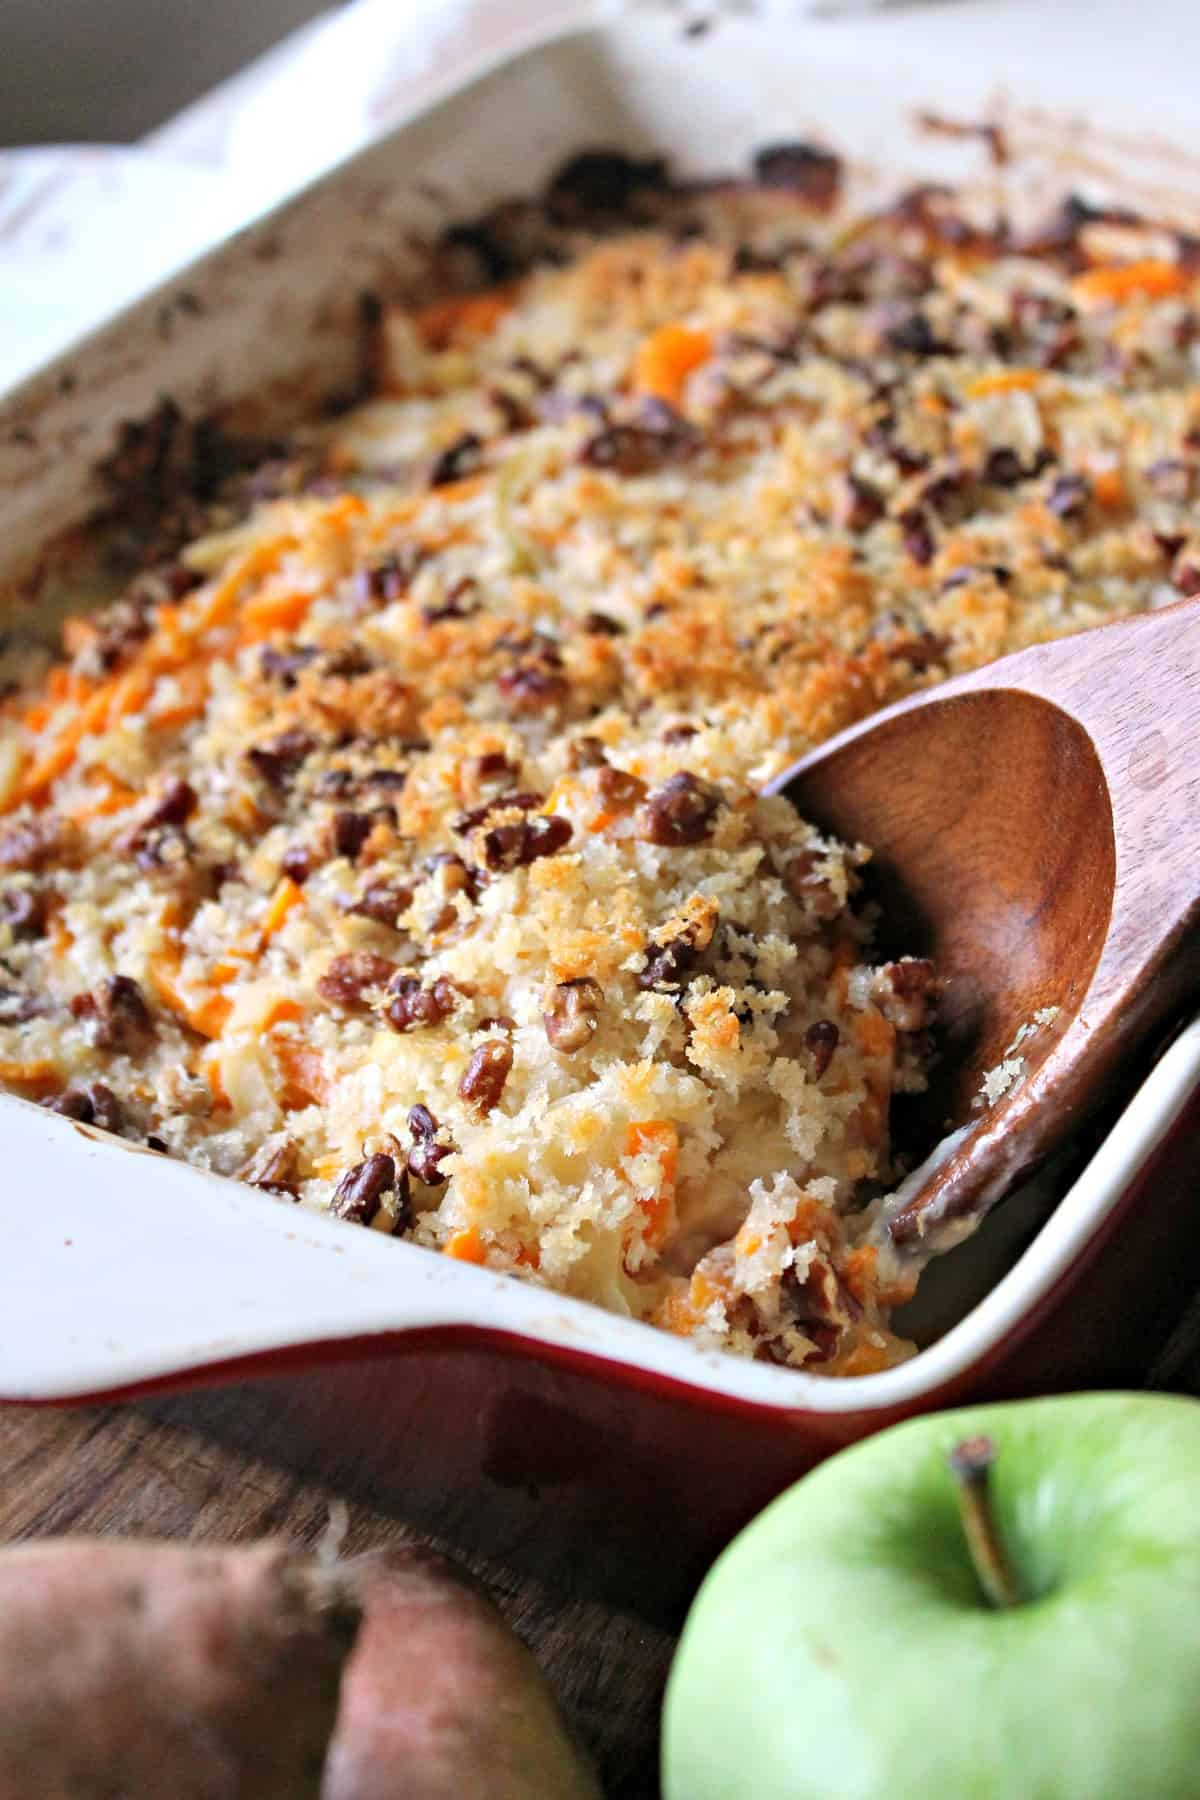 Spiralized Sweet Potato, Apple & Gouda Gratin! A new, delicious way to serve up sweet potatoes at your holiday table. Savory, sweet, creamy & crunchy!